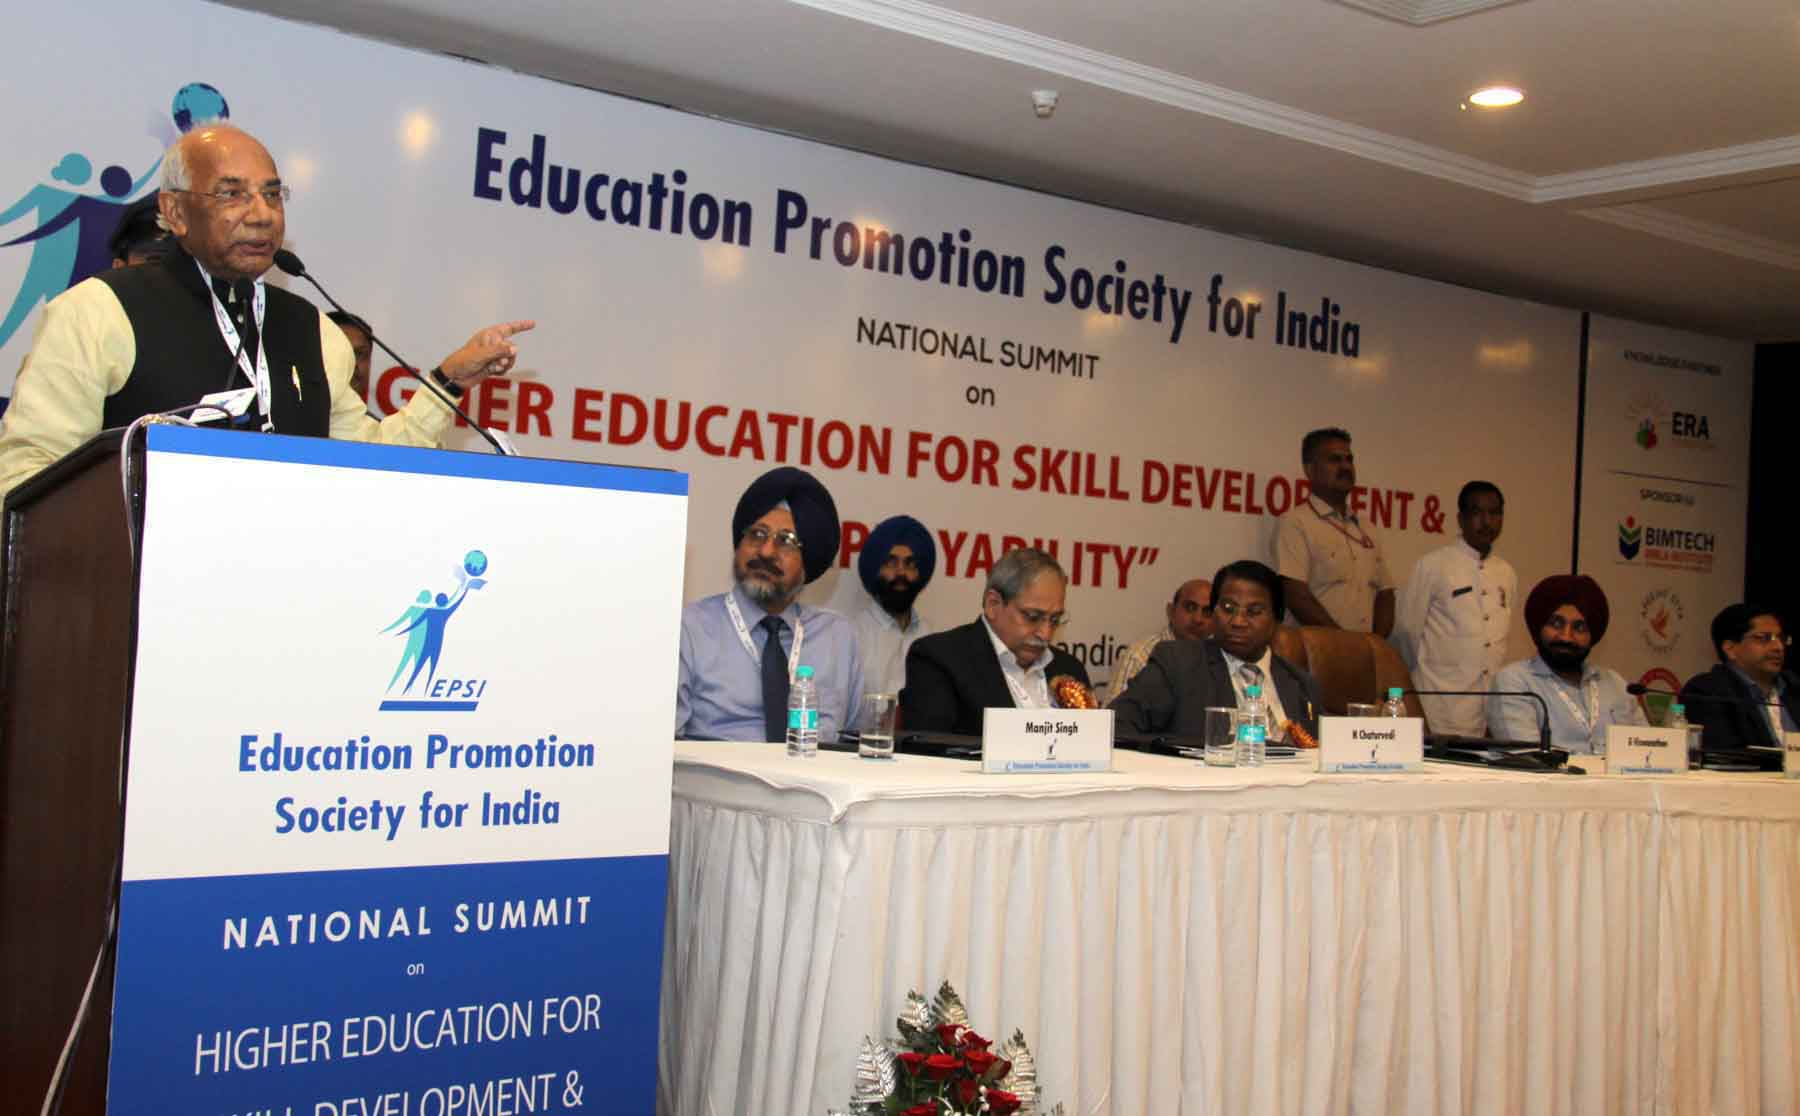 The Governor of  Punjab and Administrator, Union Territory,Chandigarh, Prof. Kaptan Singh Solanki addressing the National Summit on Higher Education for Skill Development and Employability  at Chandigarh on 08.10.2015.